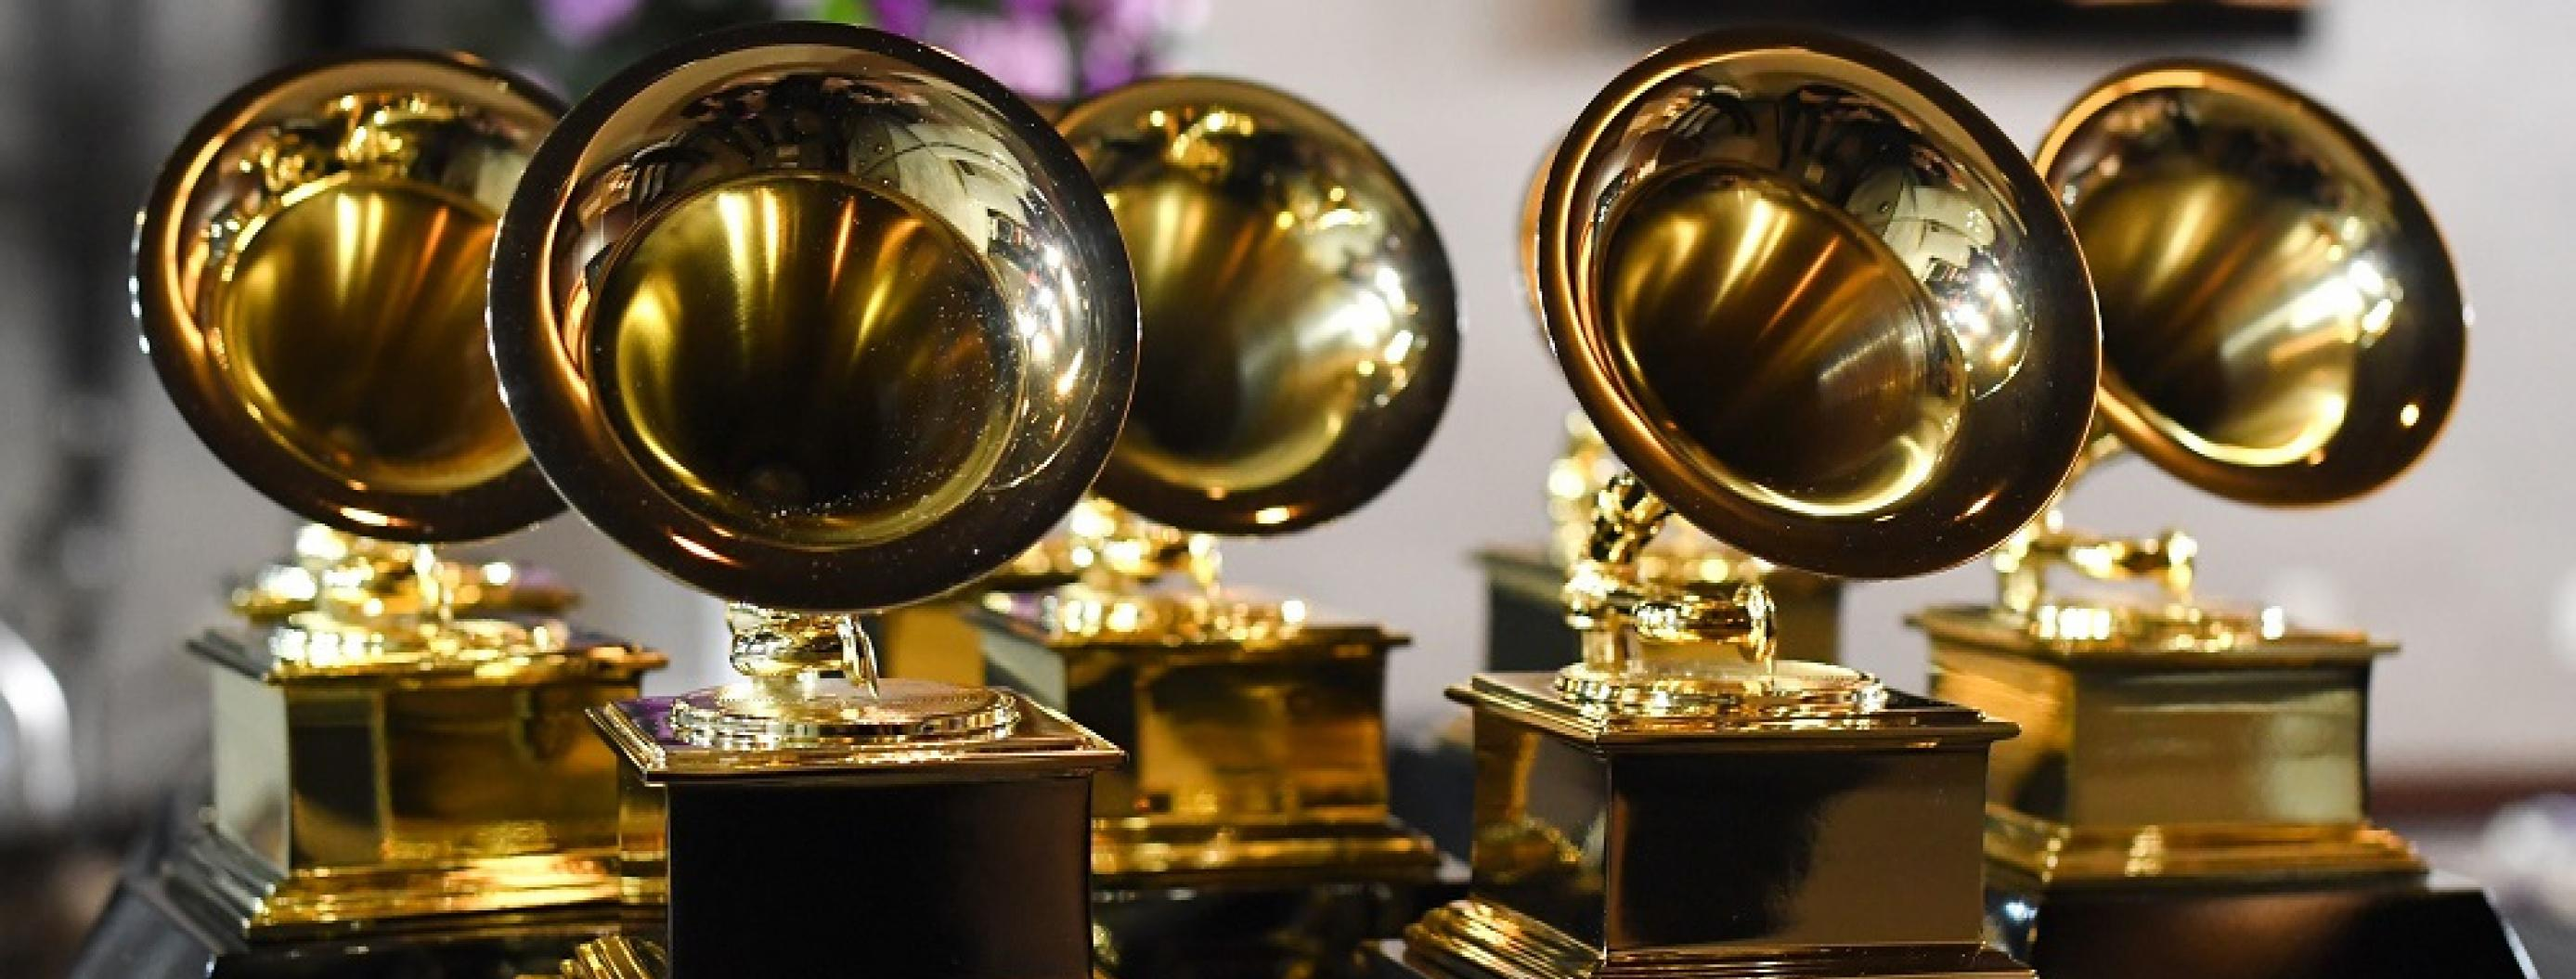 The 61th Grammy Awards Nominations